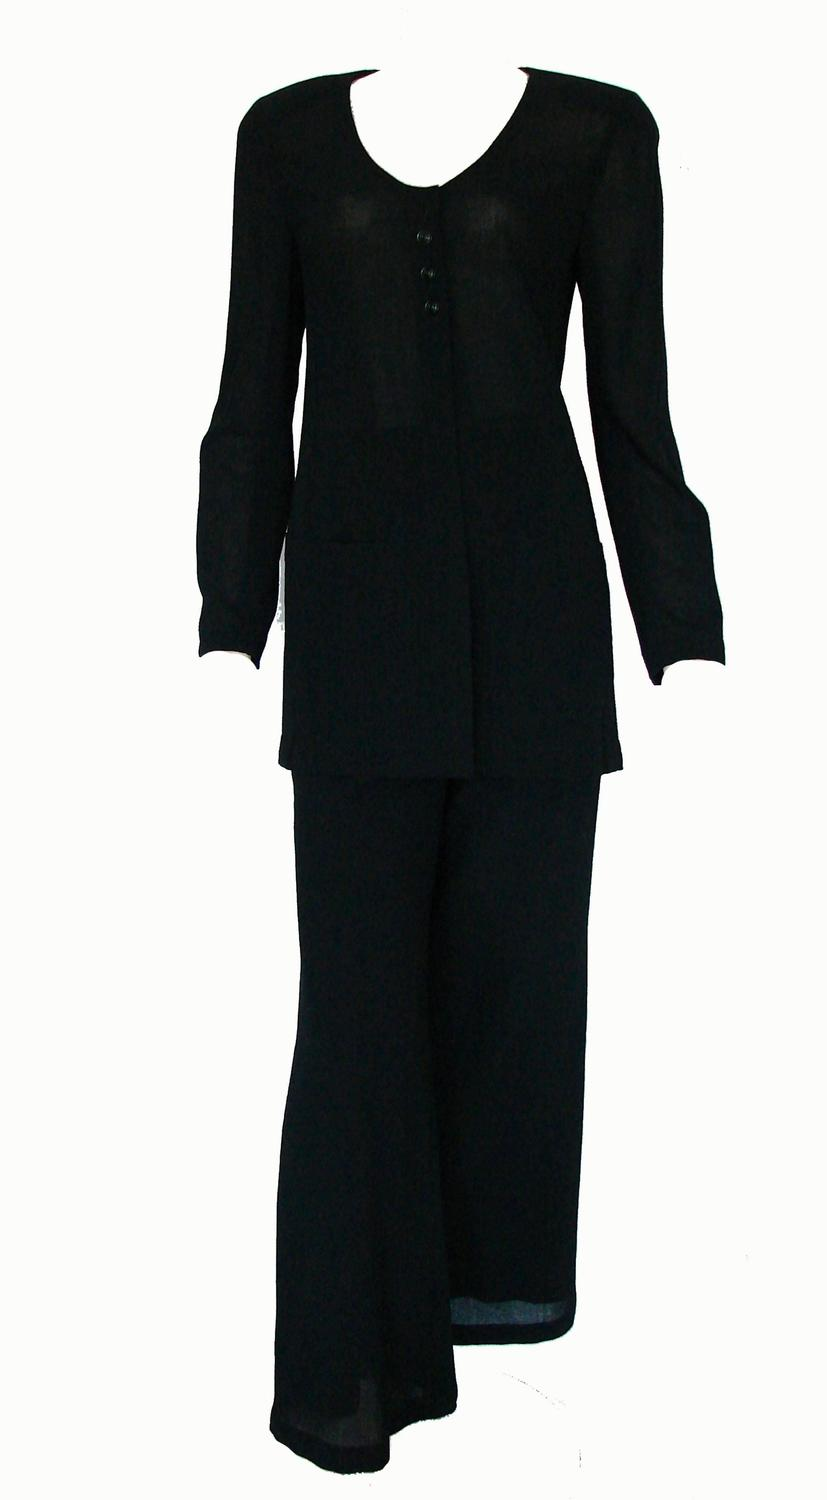 Chanel Black Sheer Wool Crepe Jacket and Pant Suit 2pc ...